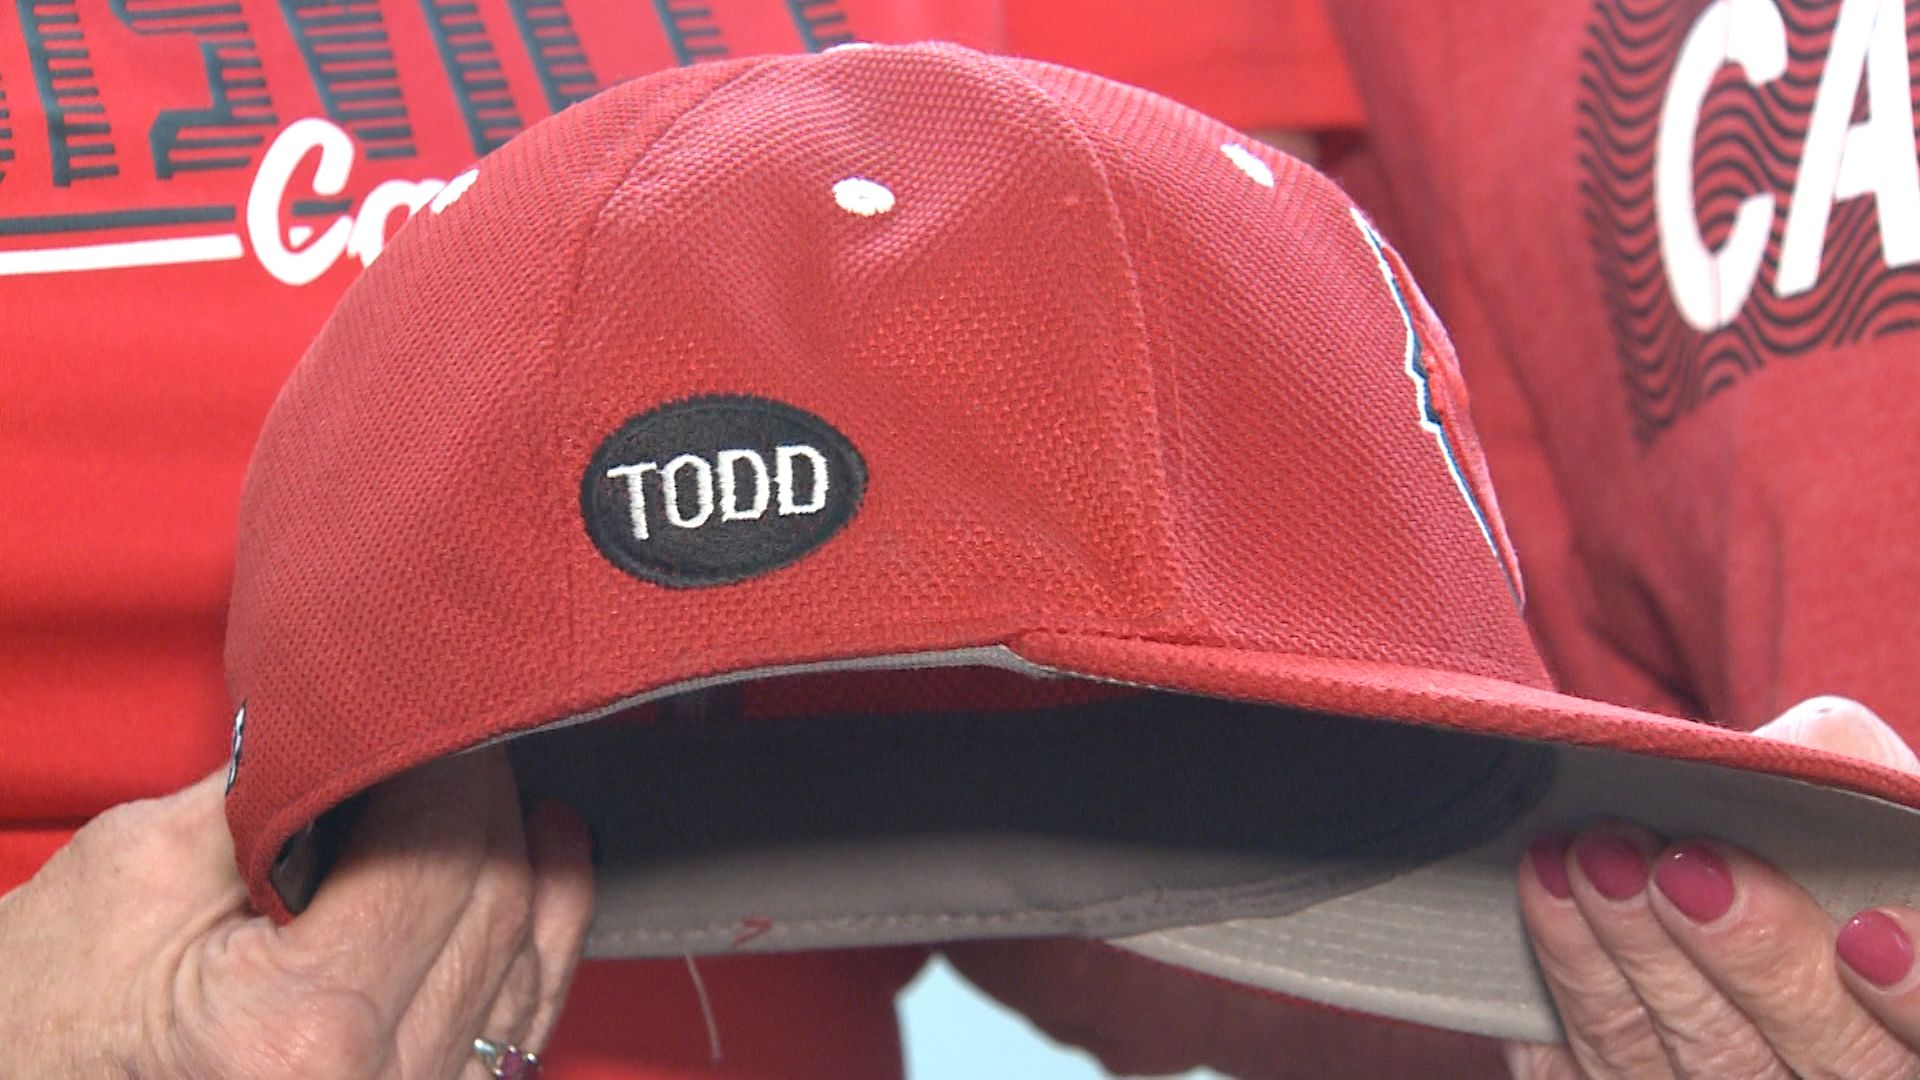 Family Of Late Uofl Baseball Superfan In Omaha Cheering For Cards